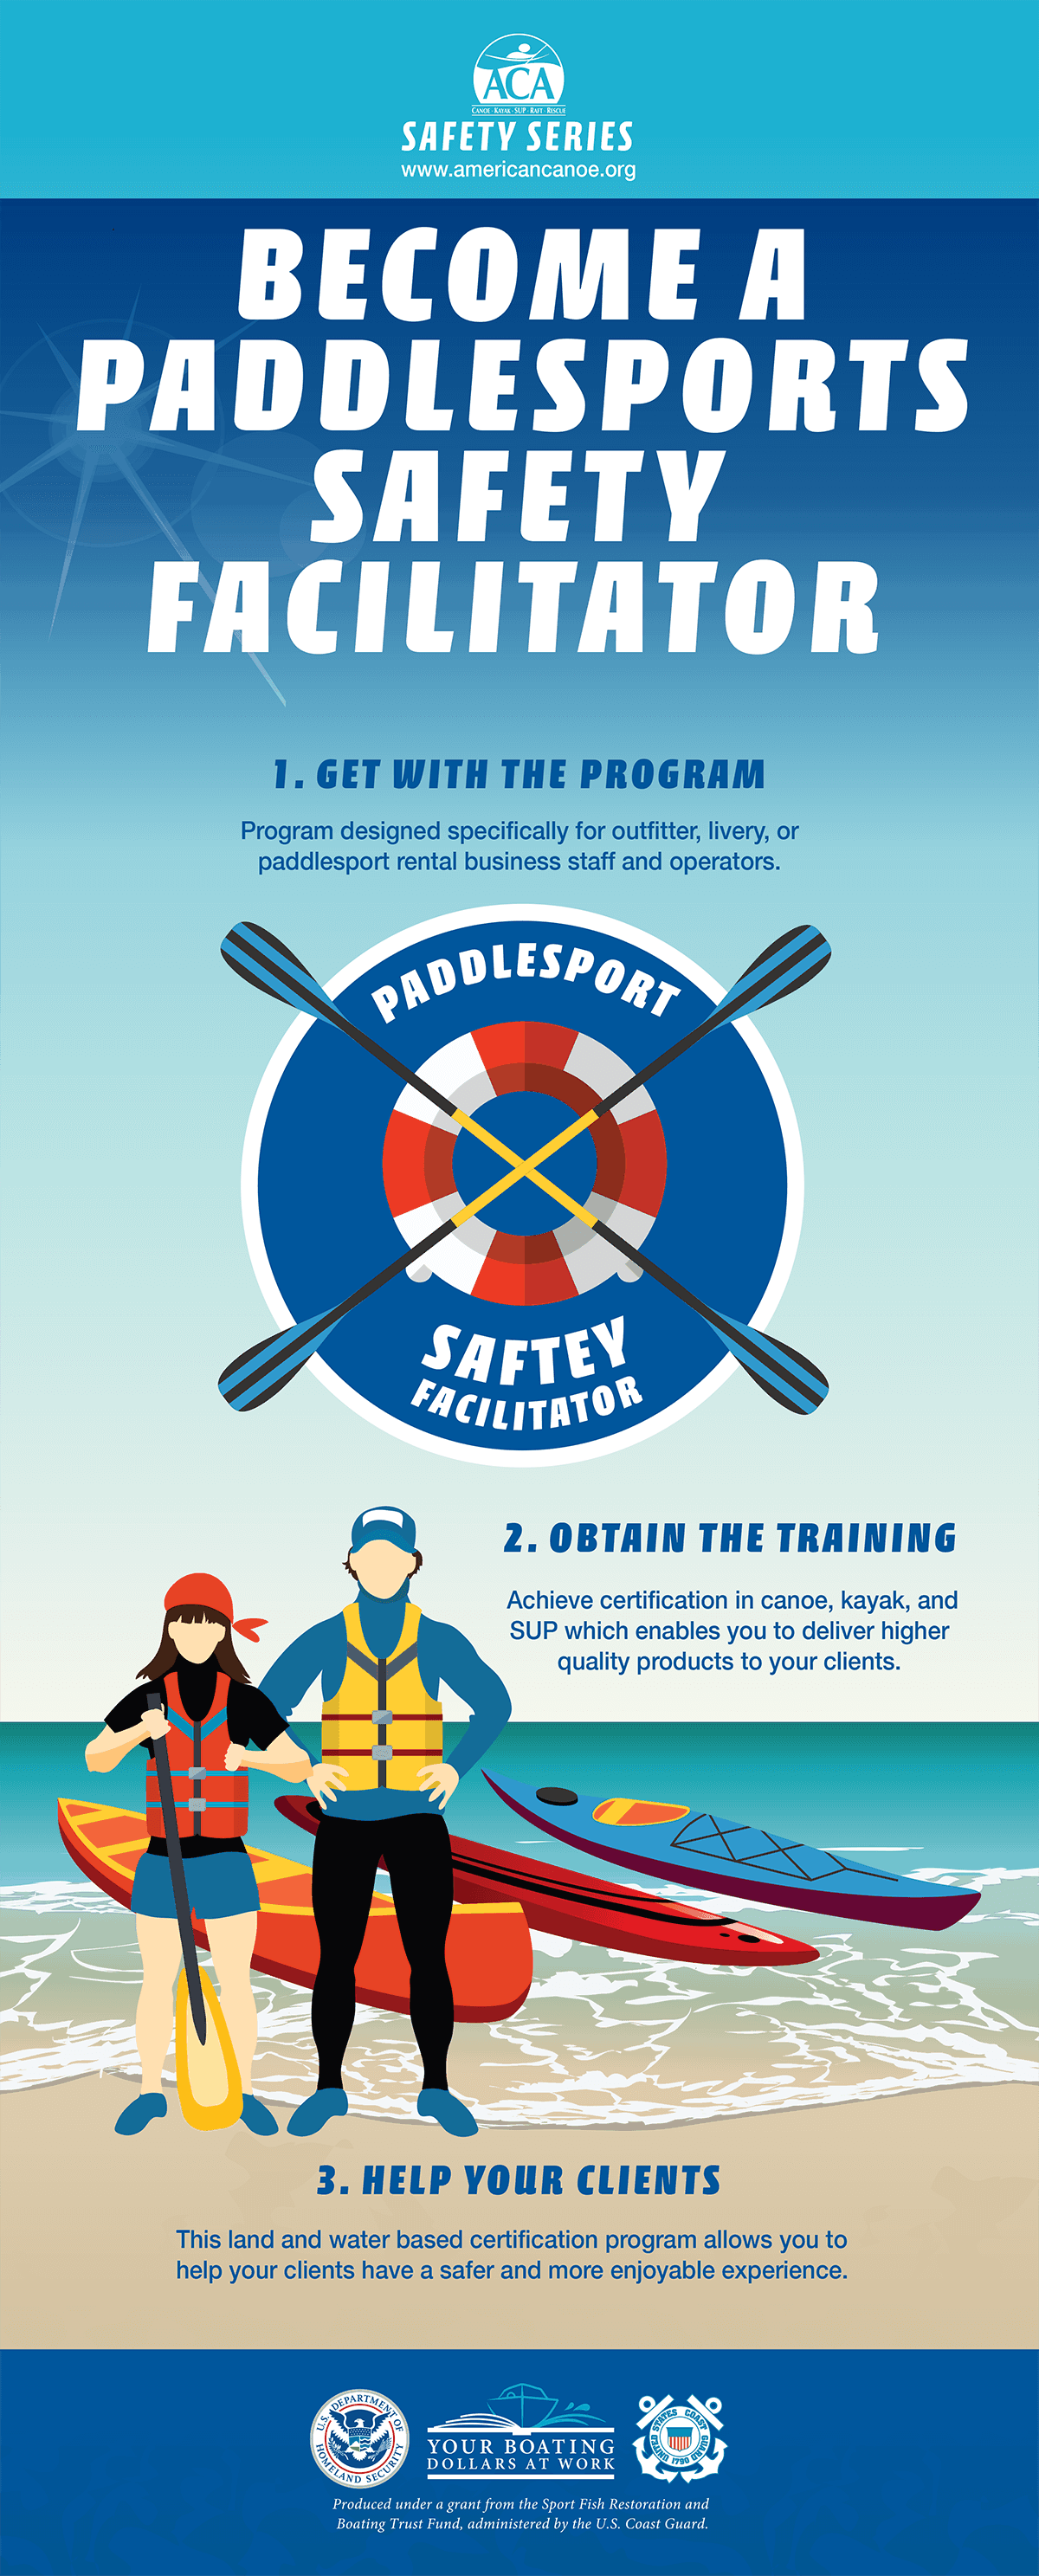 Become A Paddlesports Safety Facilitator Infographic